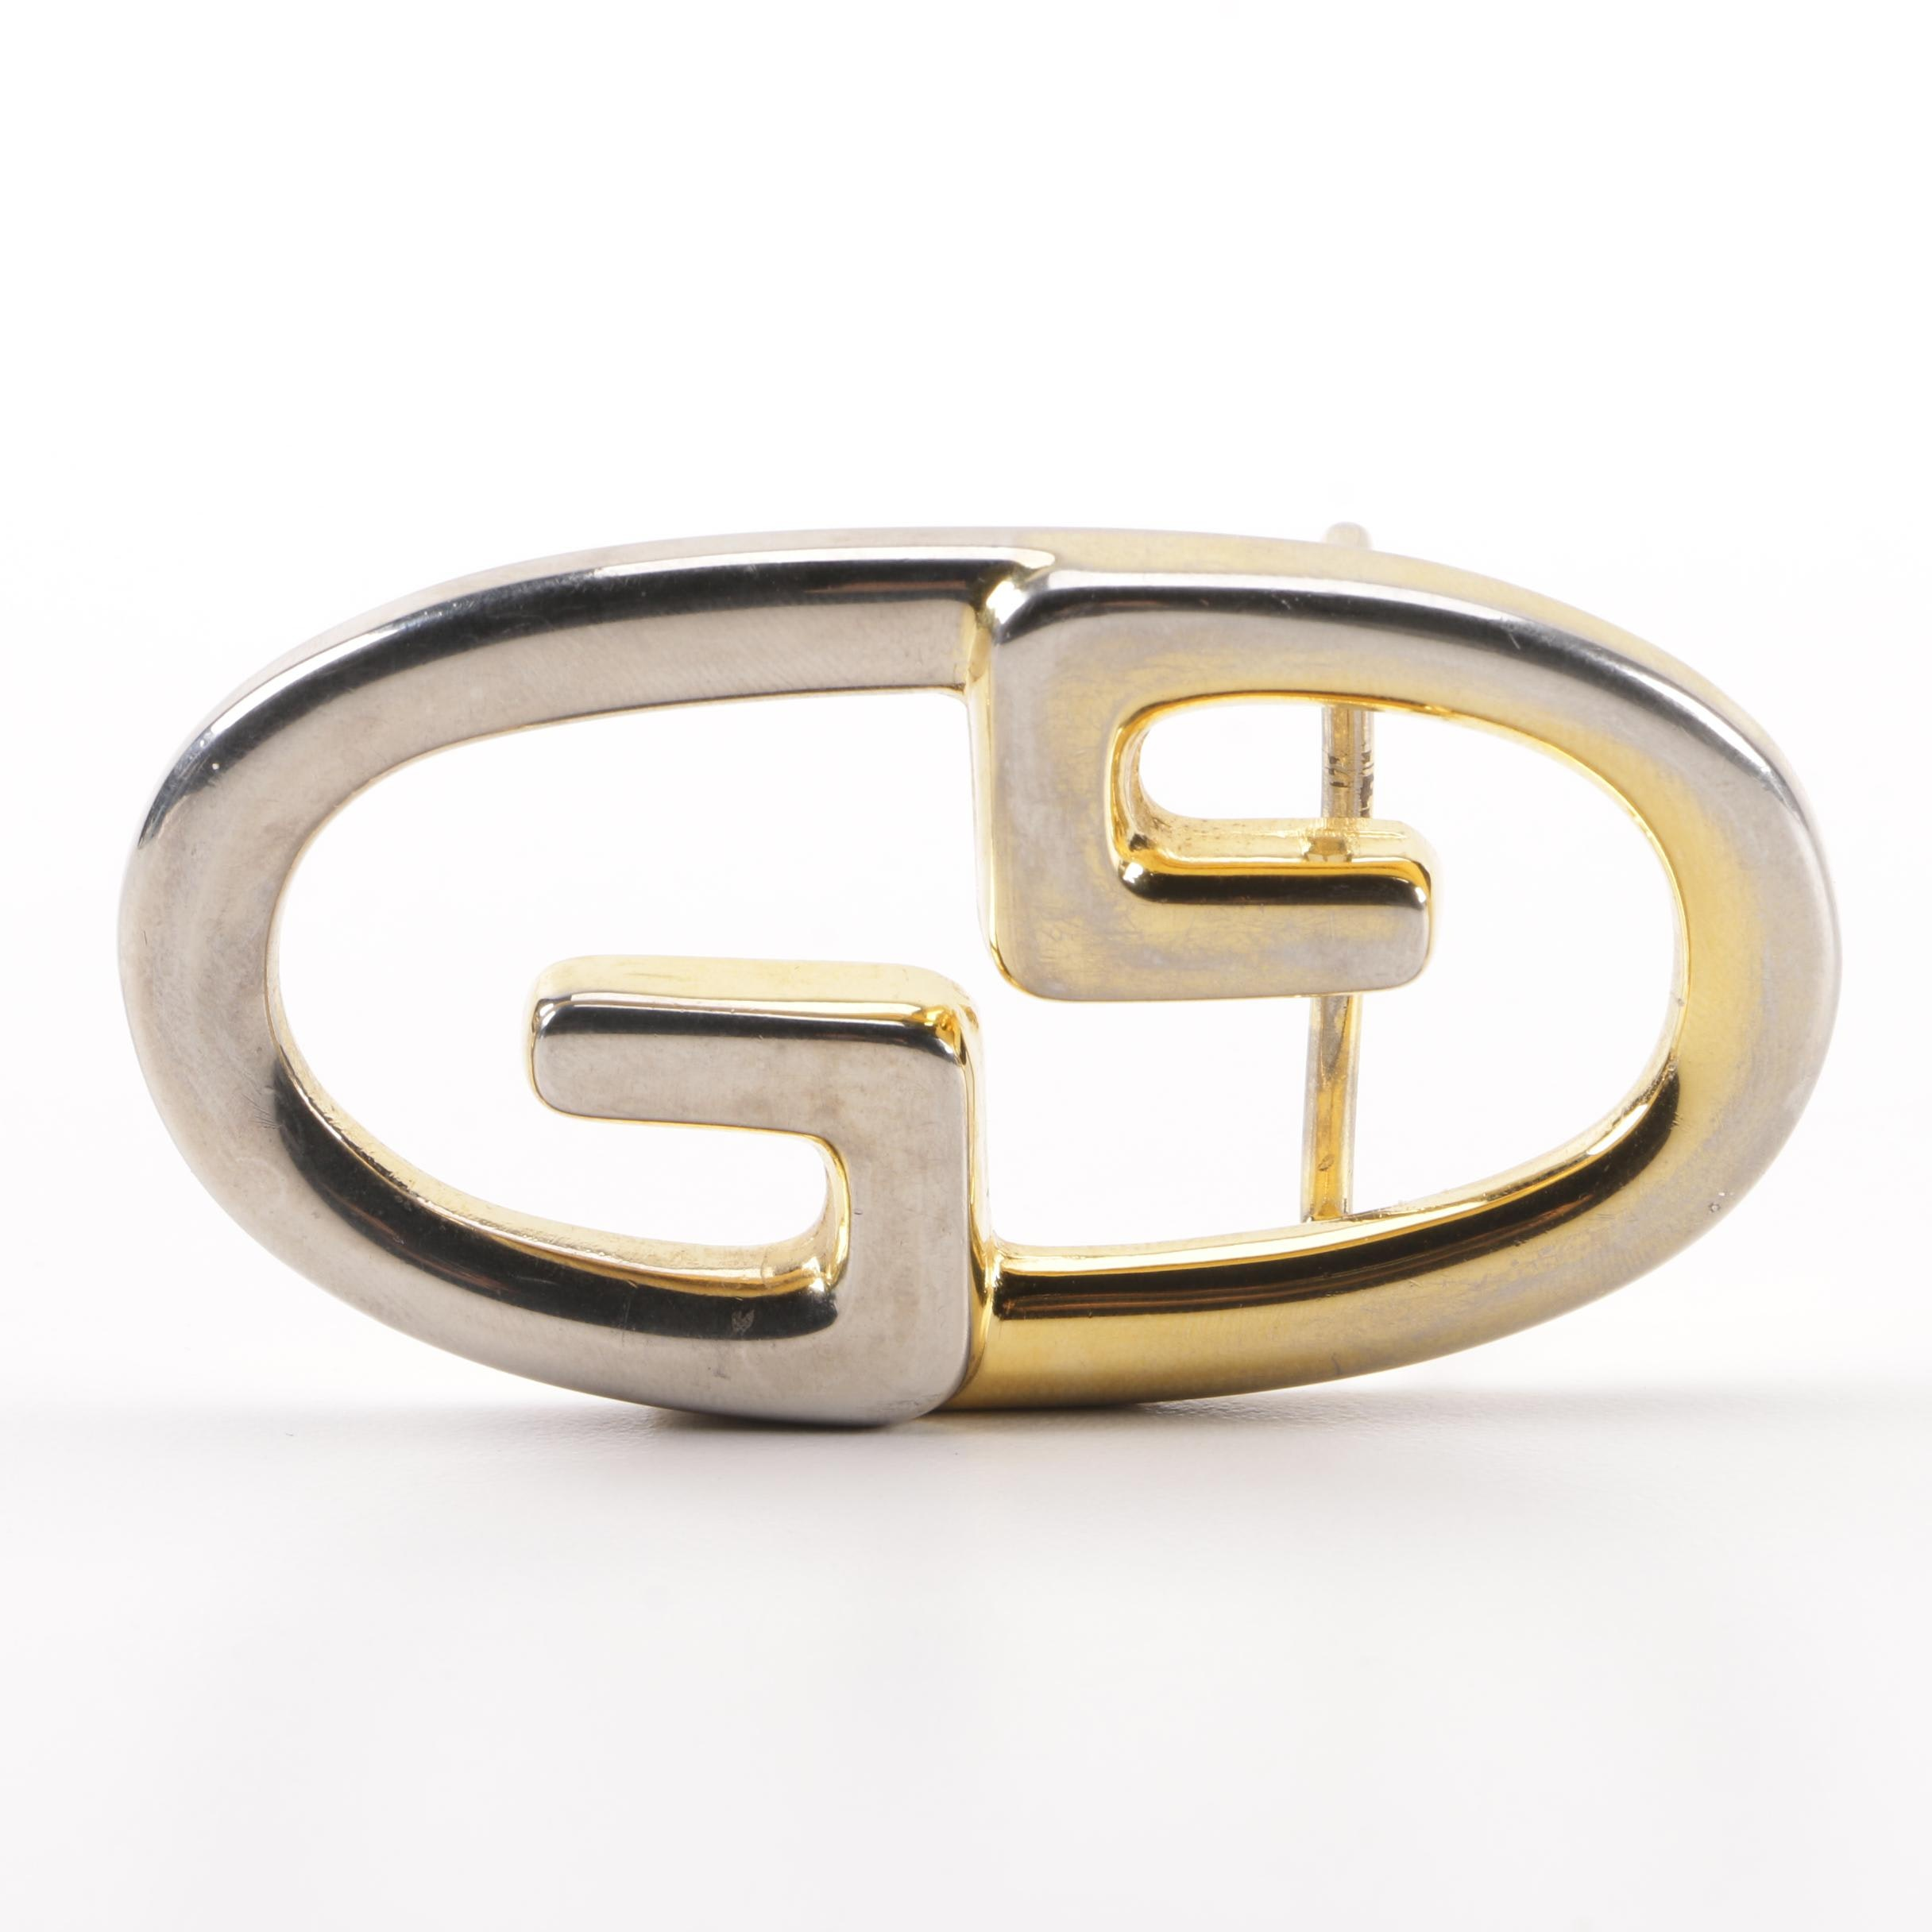 Vintage Gucci GG Two-Tone Metal Belt Buckle